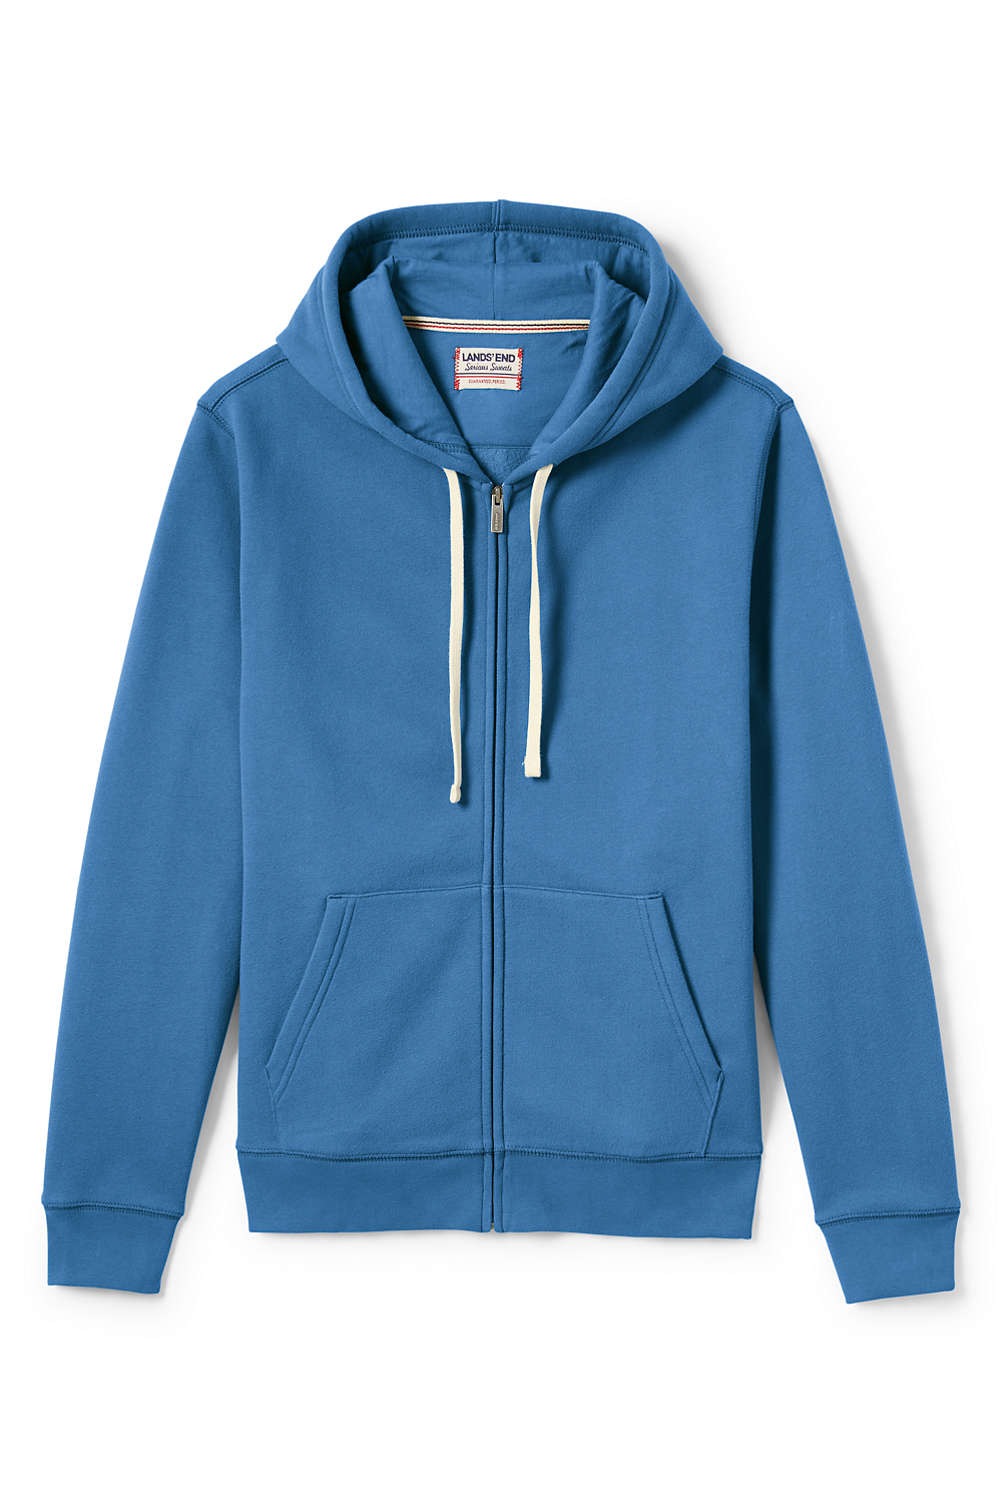 a99dd9cf6880 Men s Serious Sweats Full Zip Hoodie from Lands  End